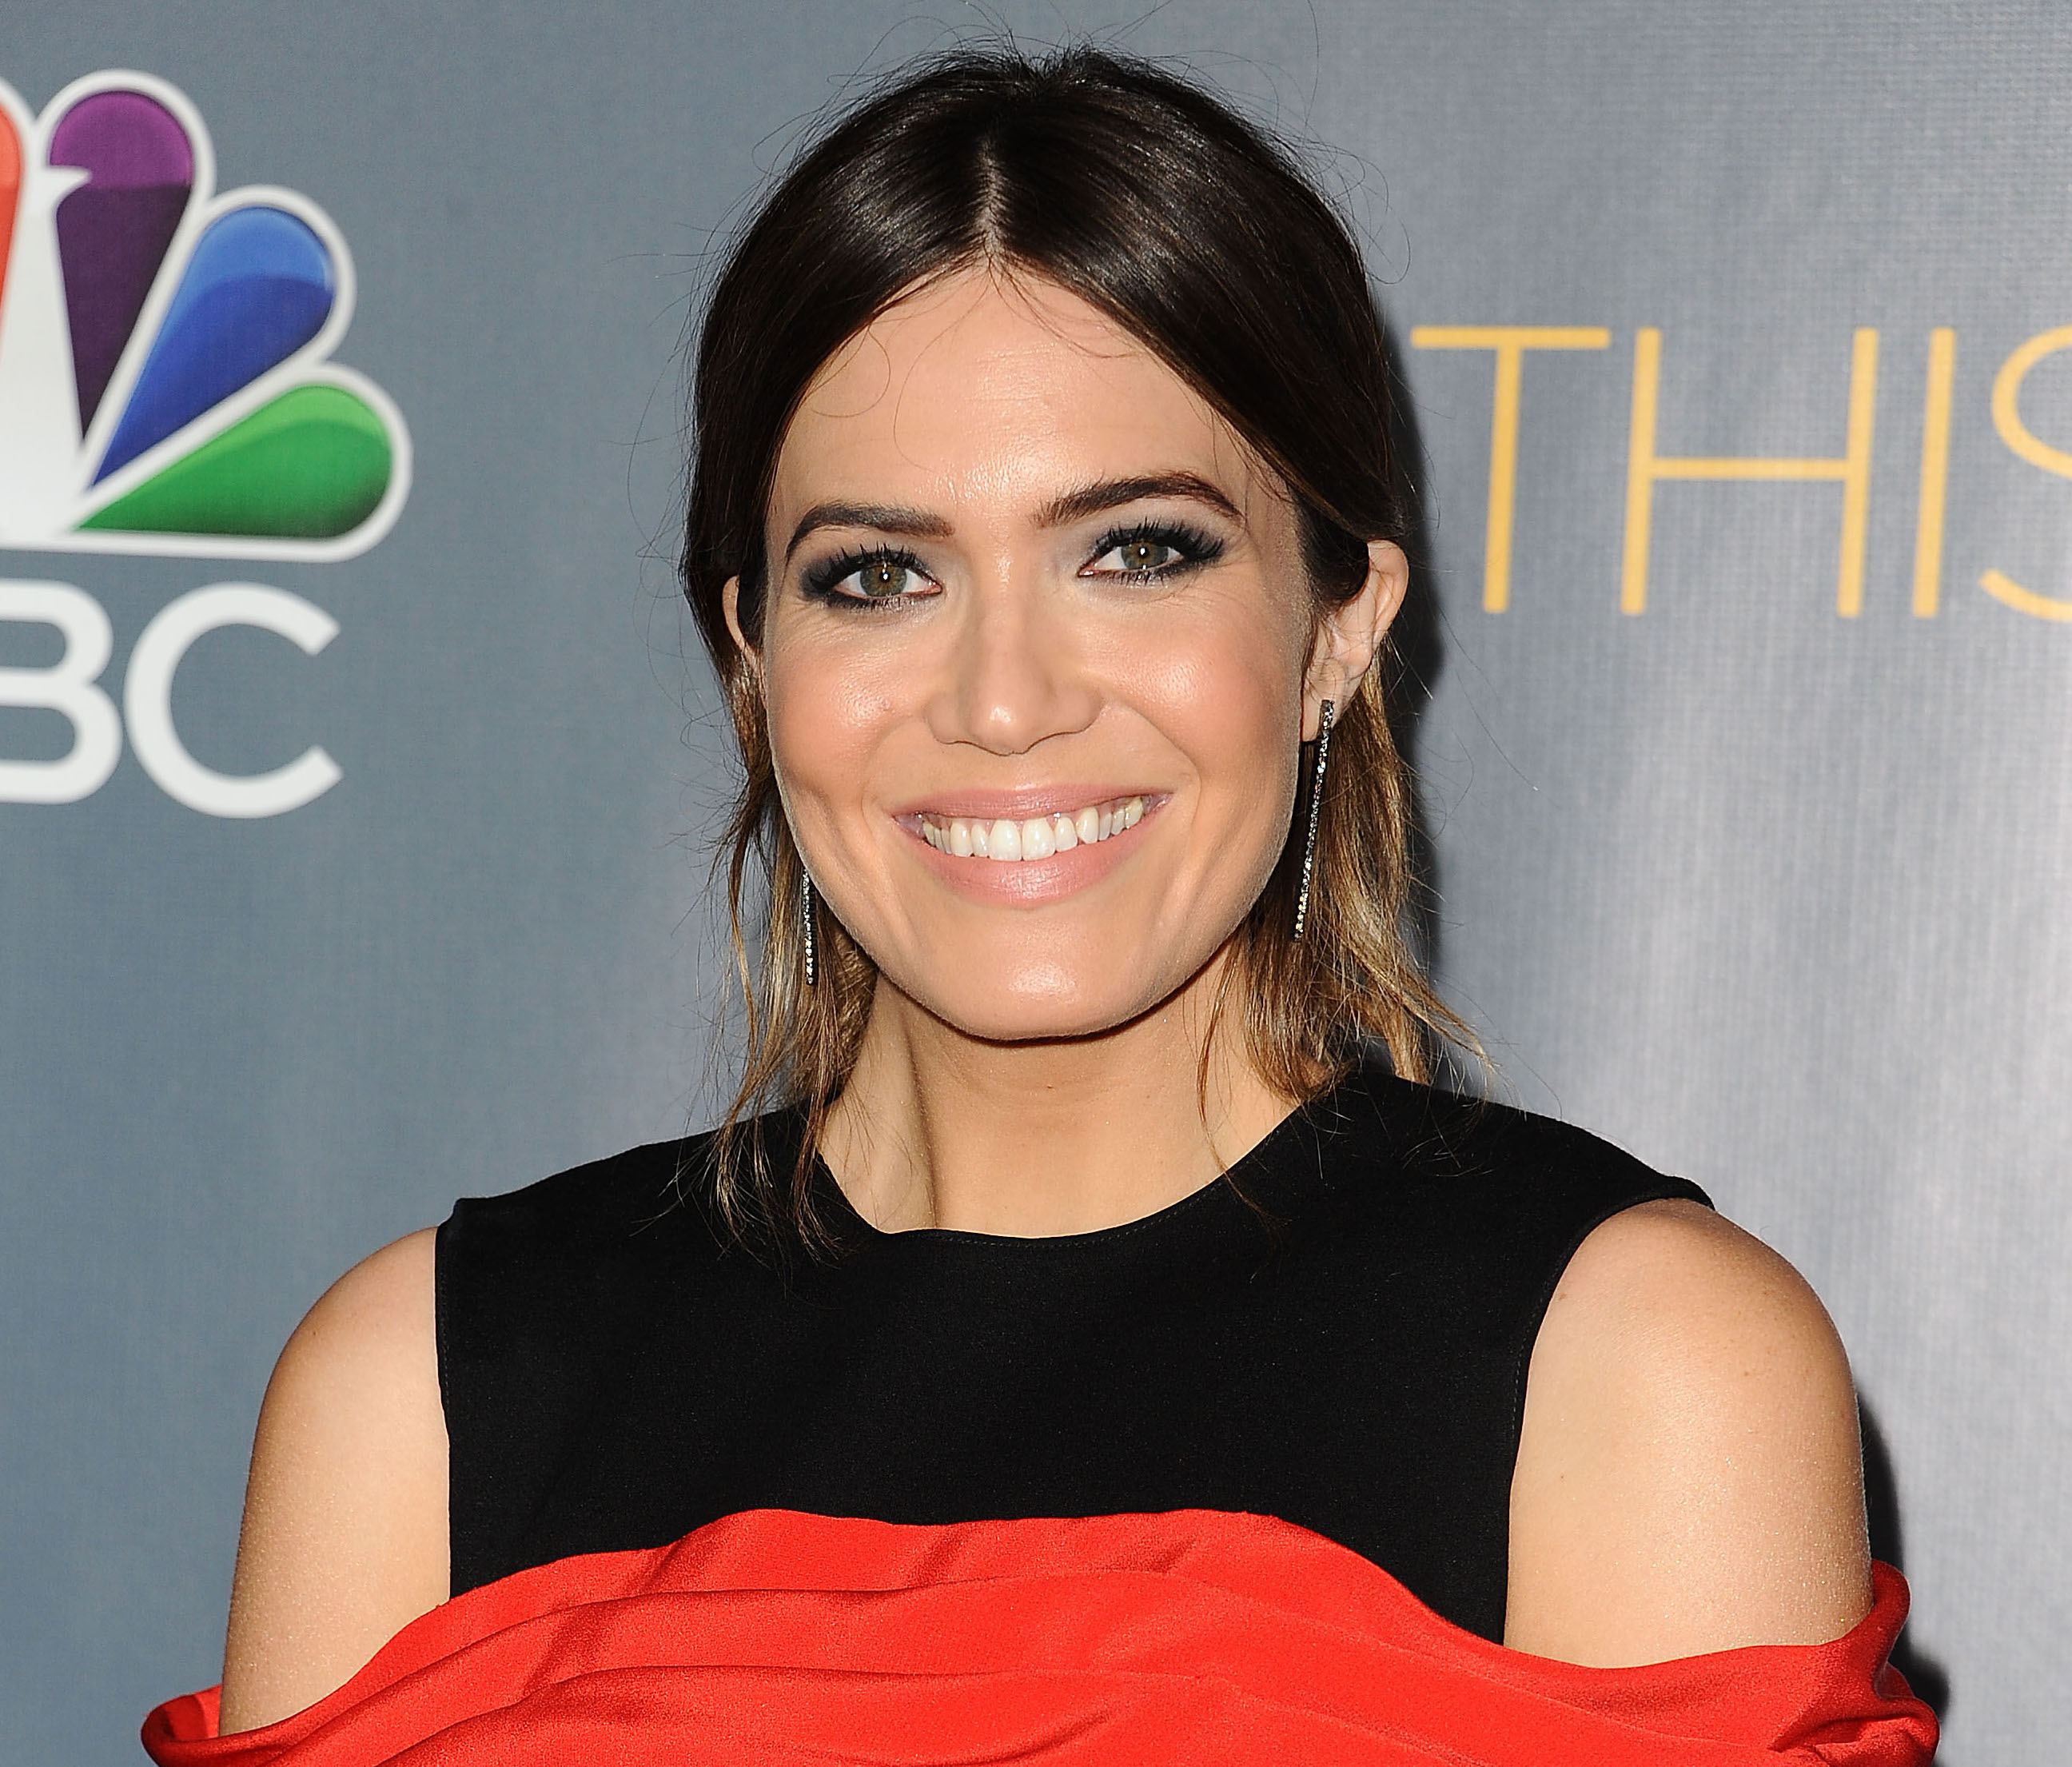 Mandy Moore is suddenly making us want wear purple and yellow together